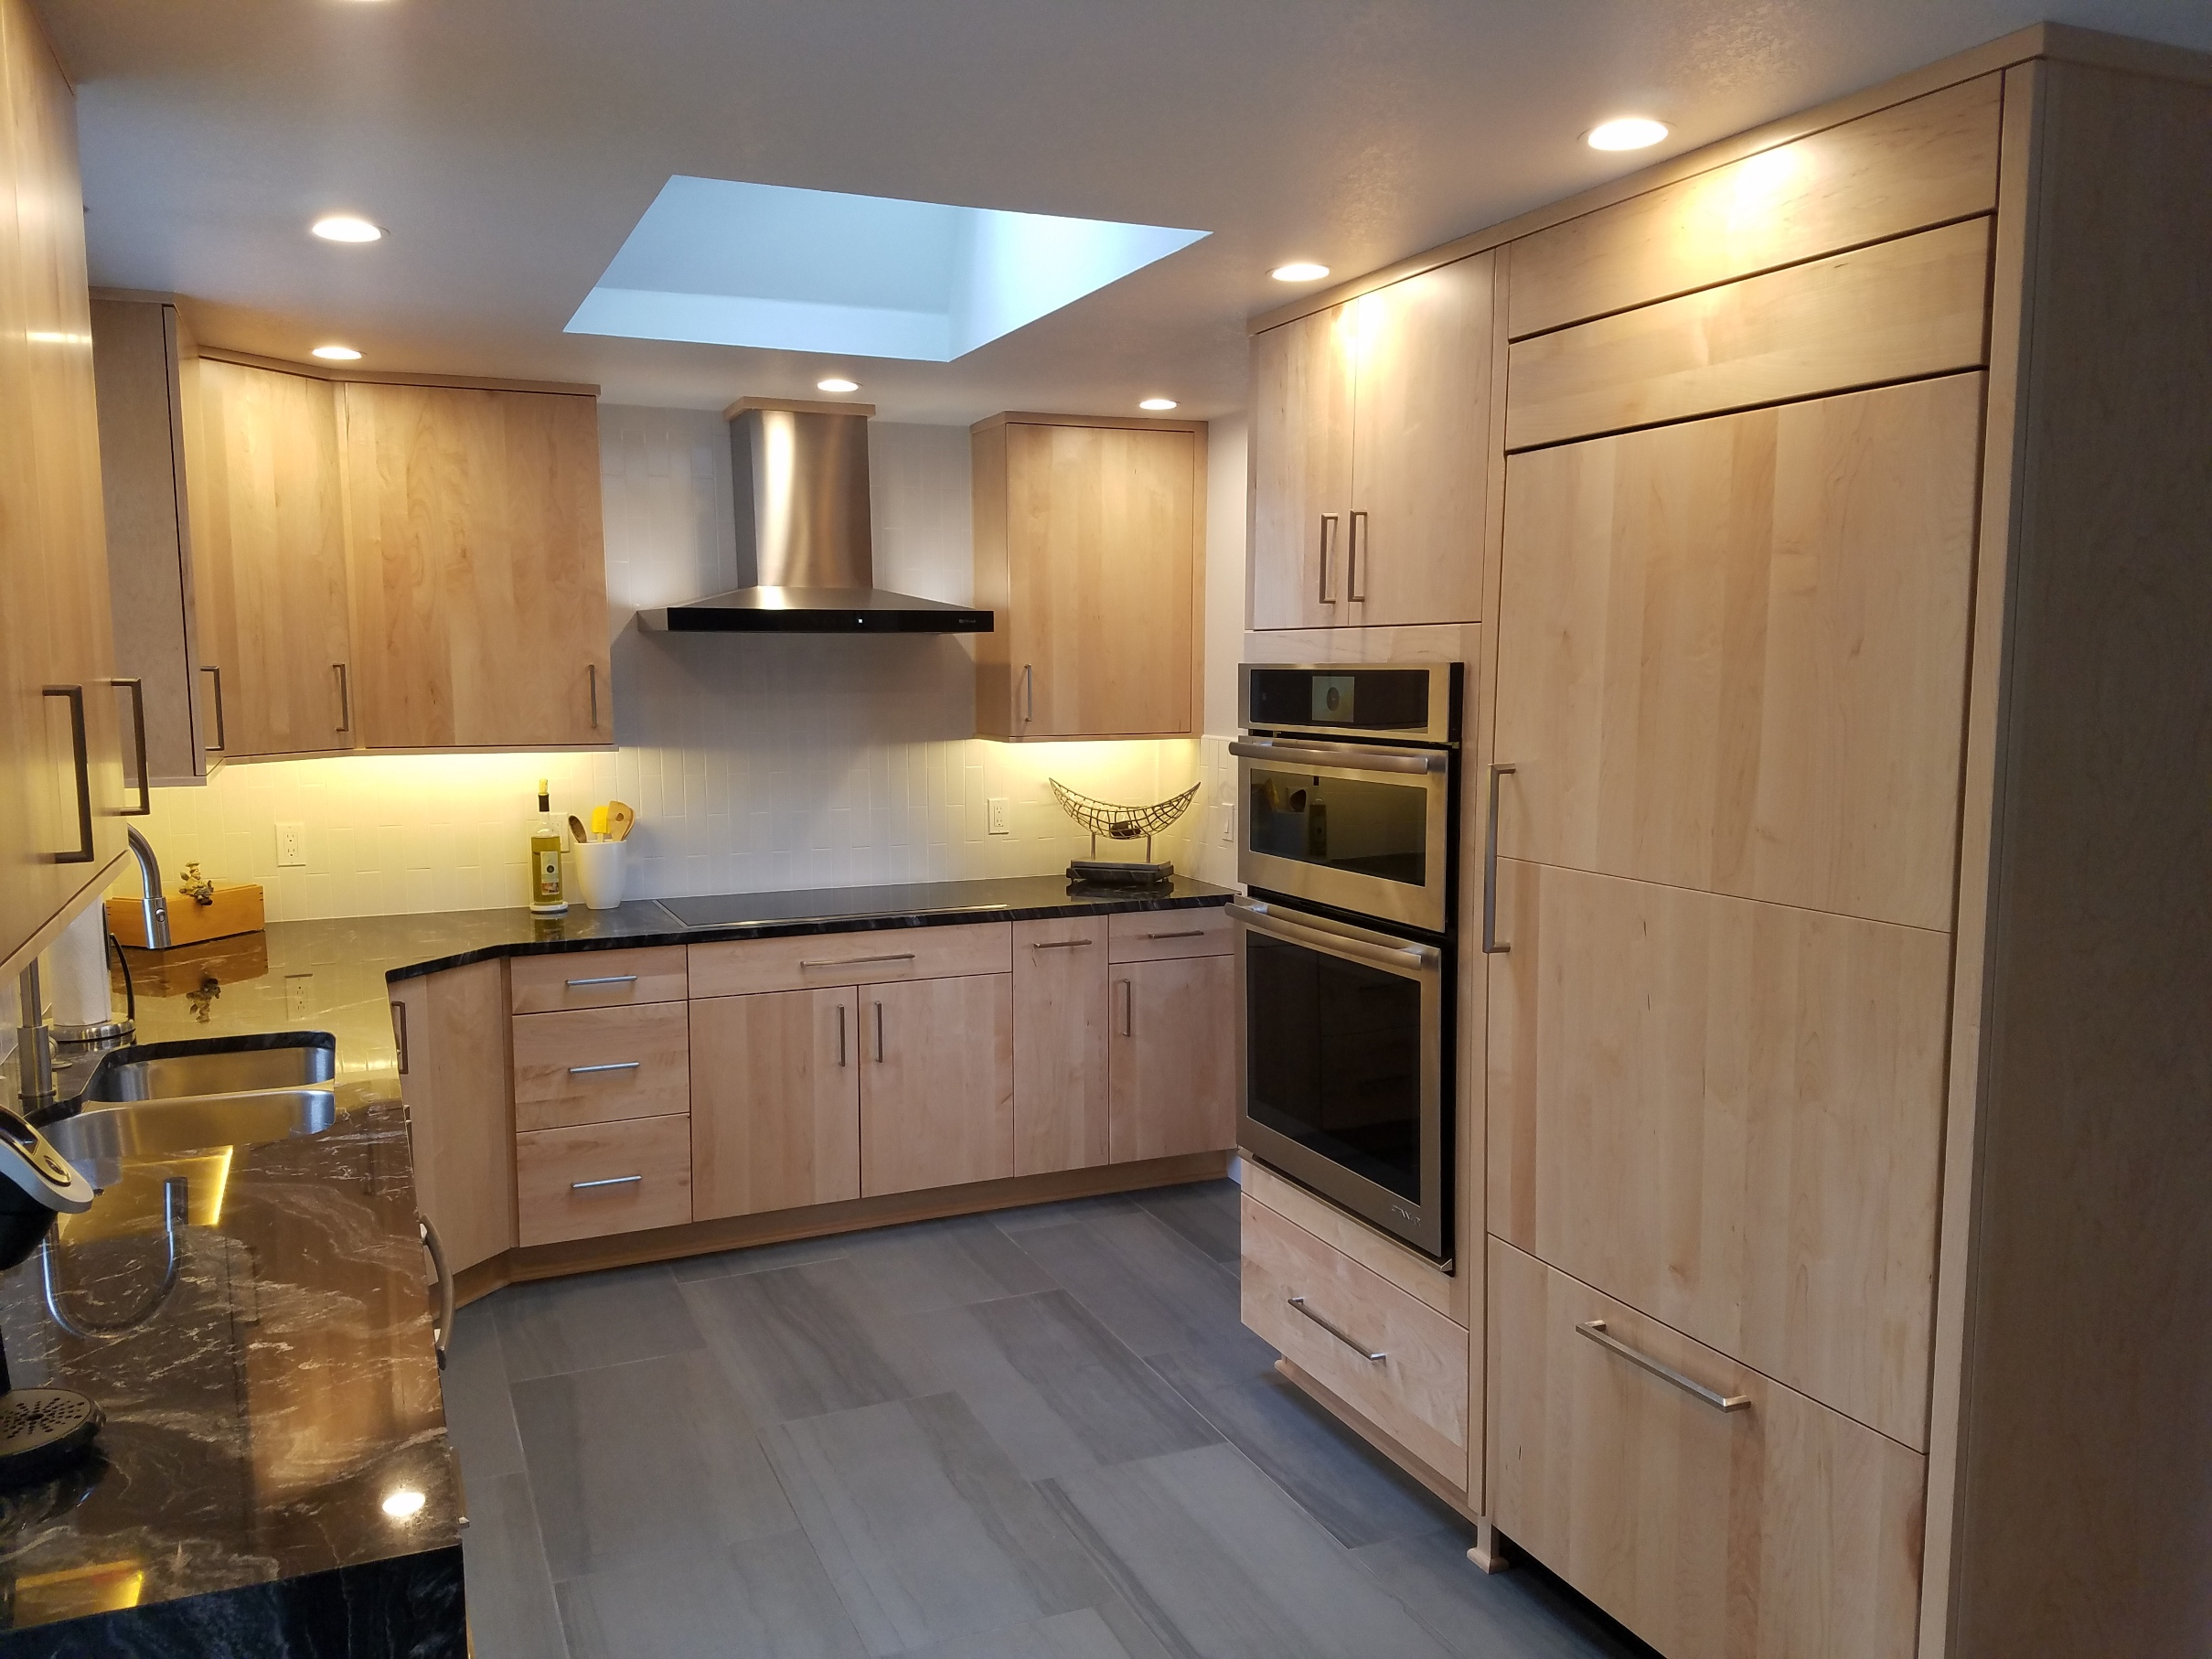 Maple Kitchens - Kitchen Concepts LLC on Natural Maple Cabinets With Quartz Countertops  id=86255